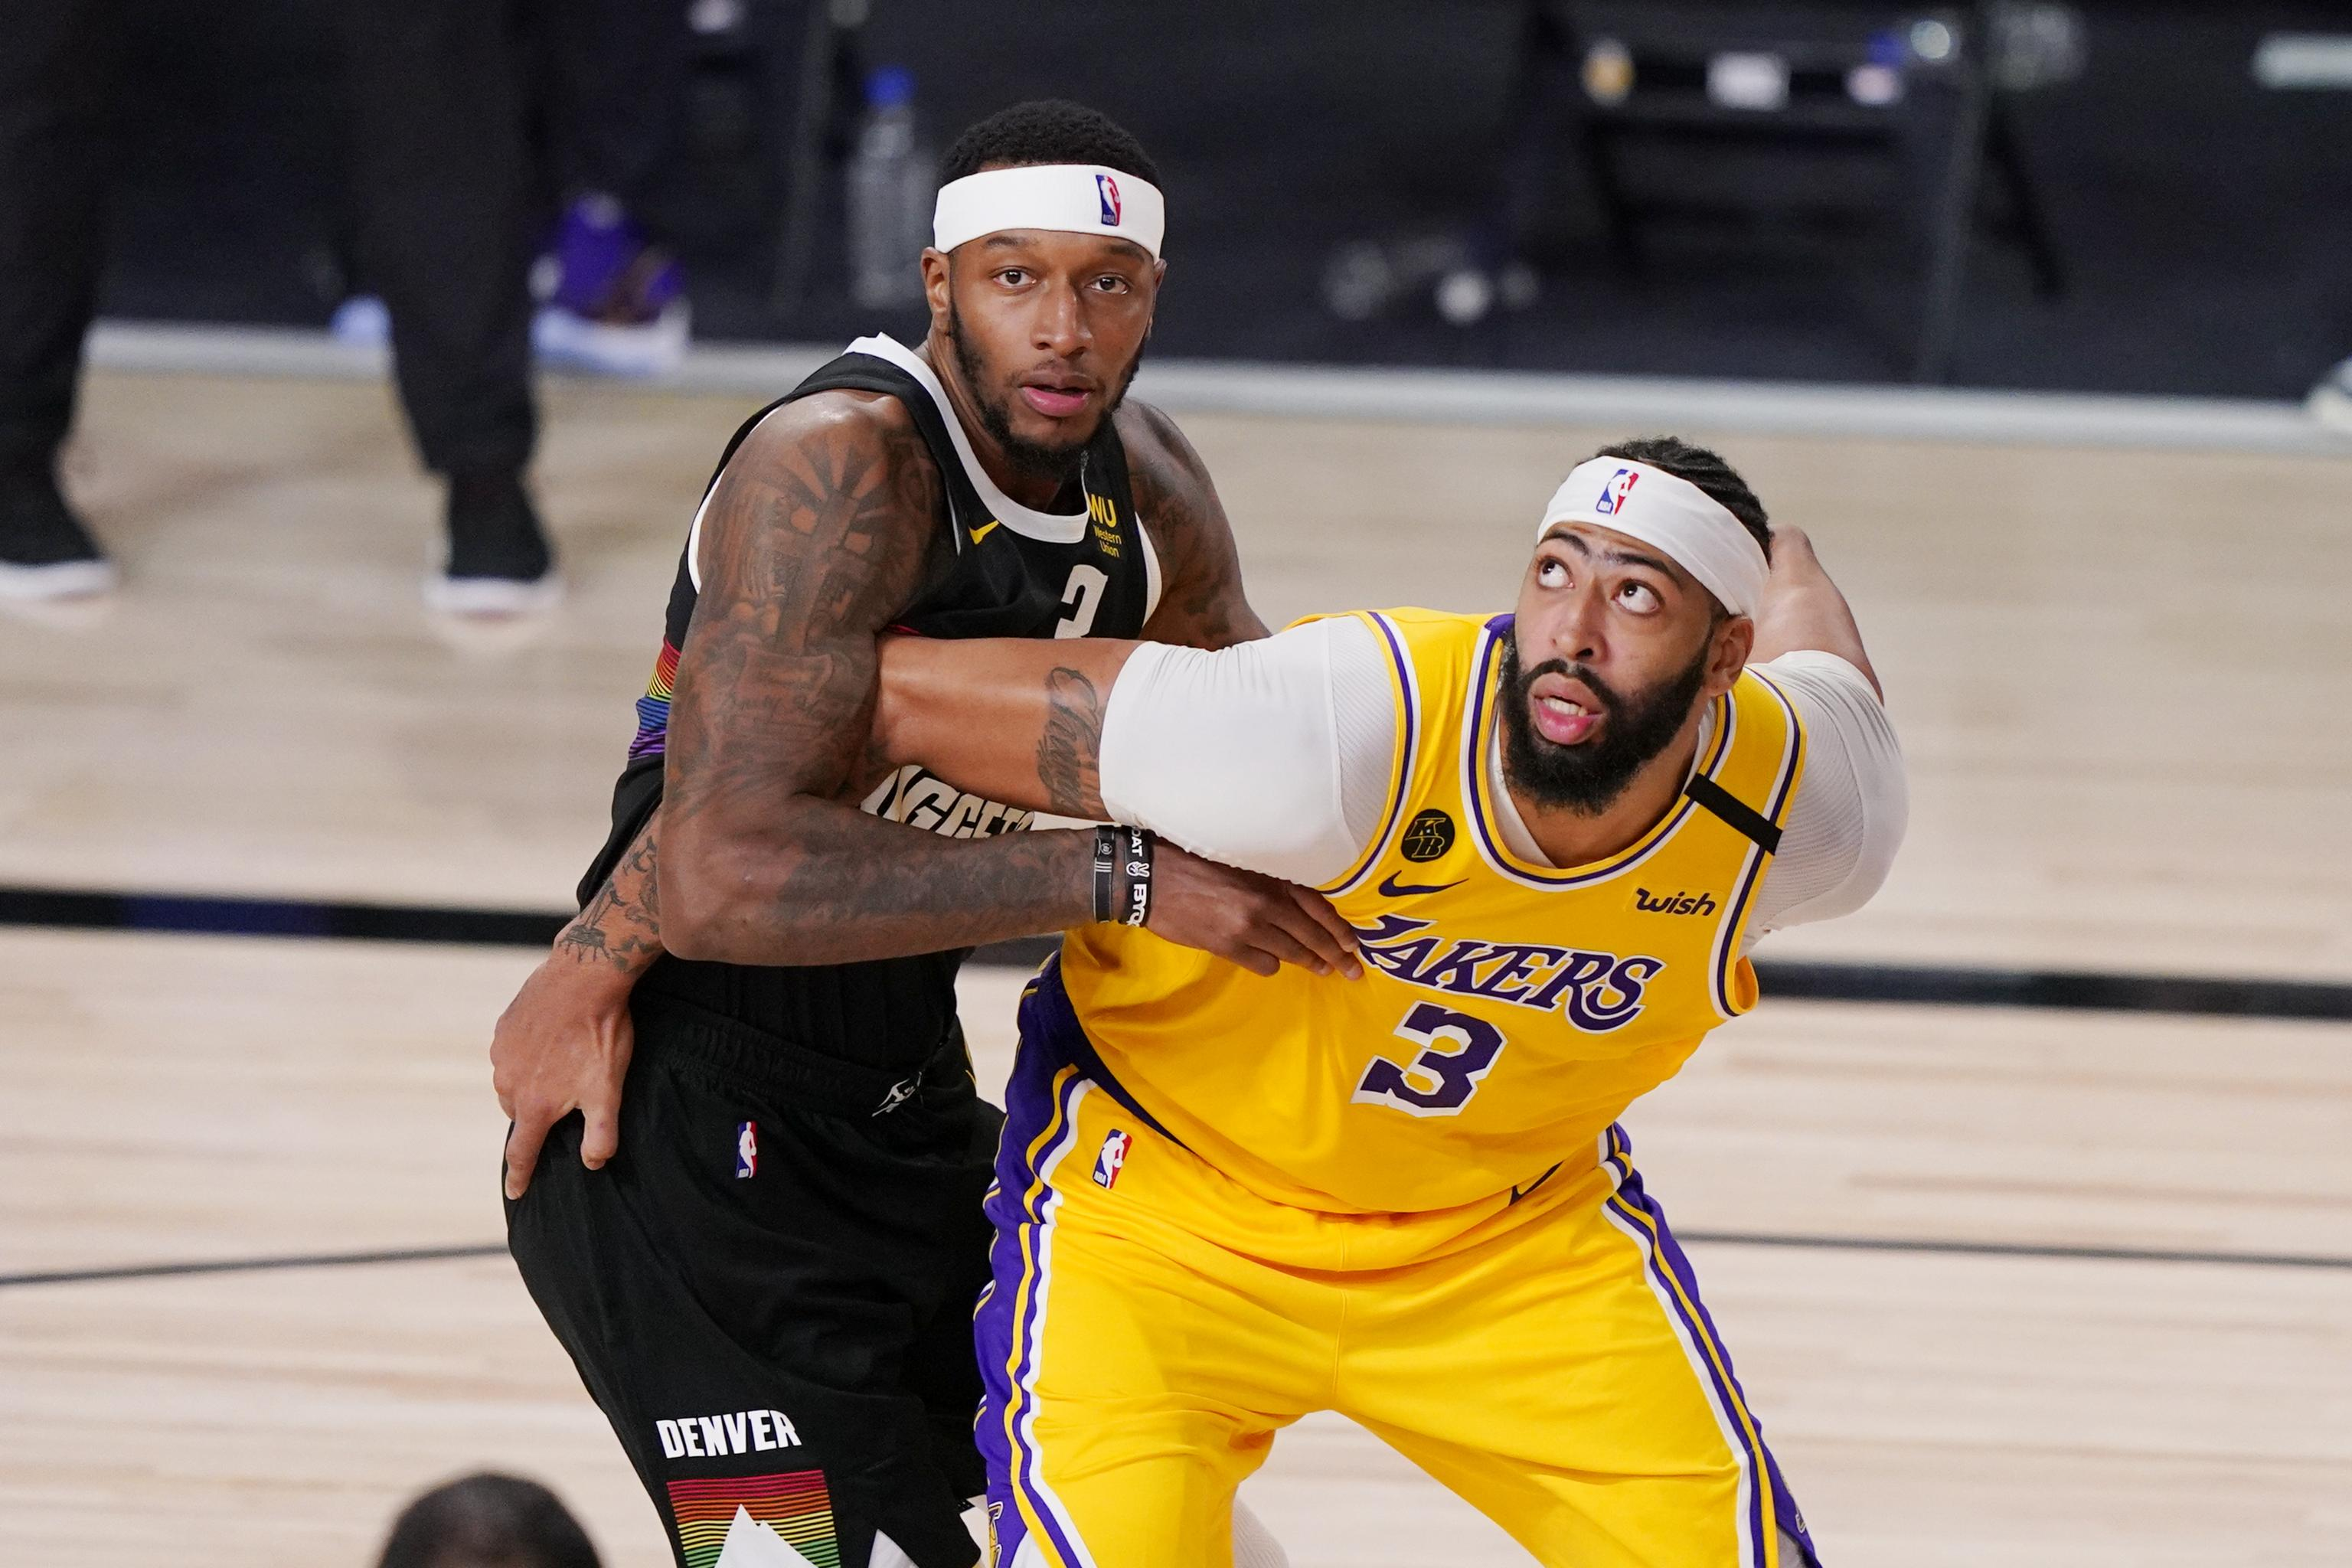 Nba Finals 2020 Heat Vs Lakers Game 1 Odds Props And Predictions Bleacher Report Latest News Videos And Highlights